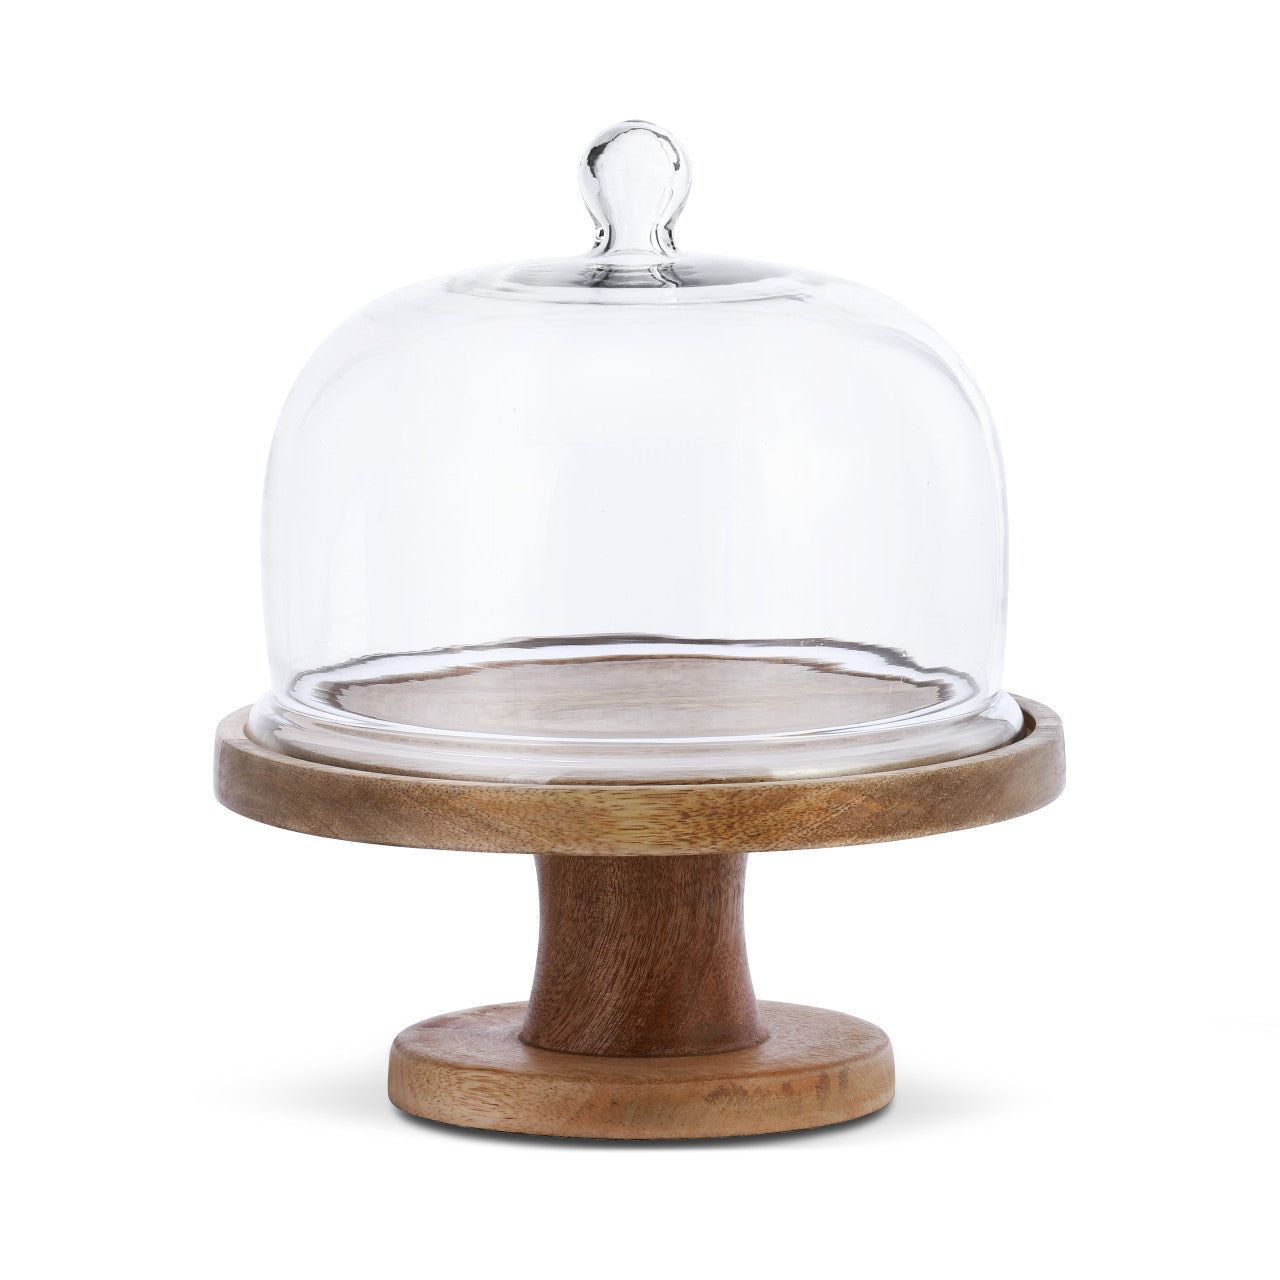 Cake Stand with Glass Cover!!!